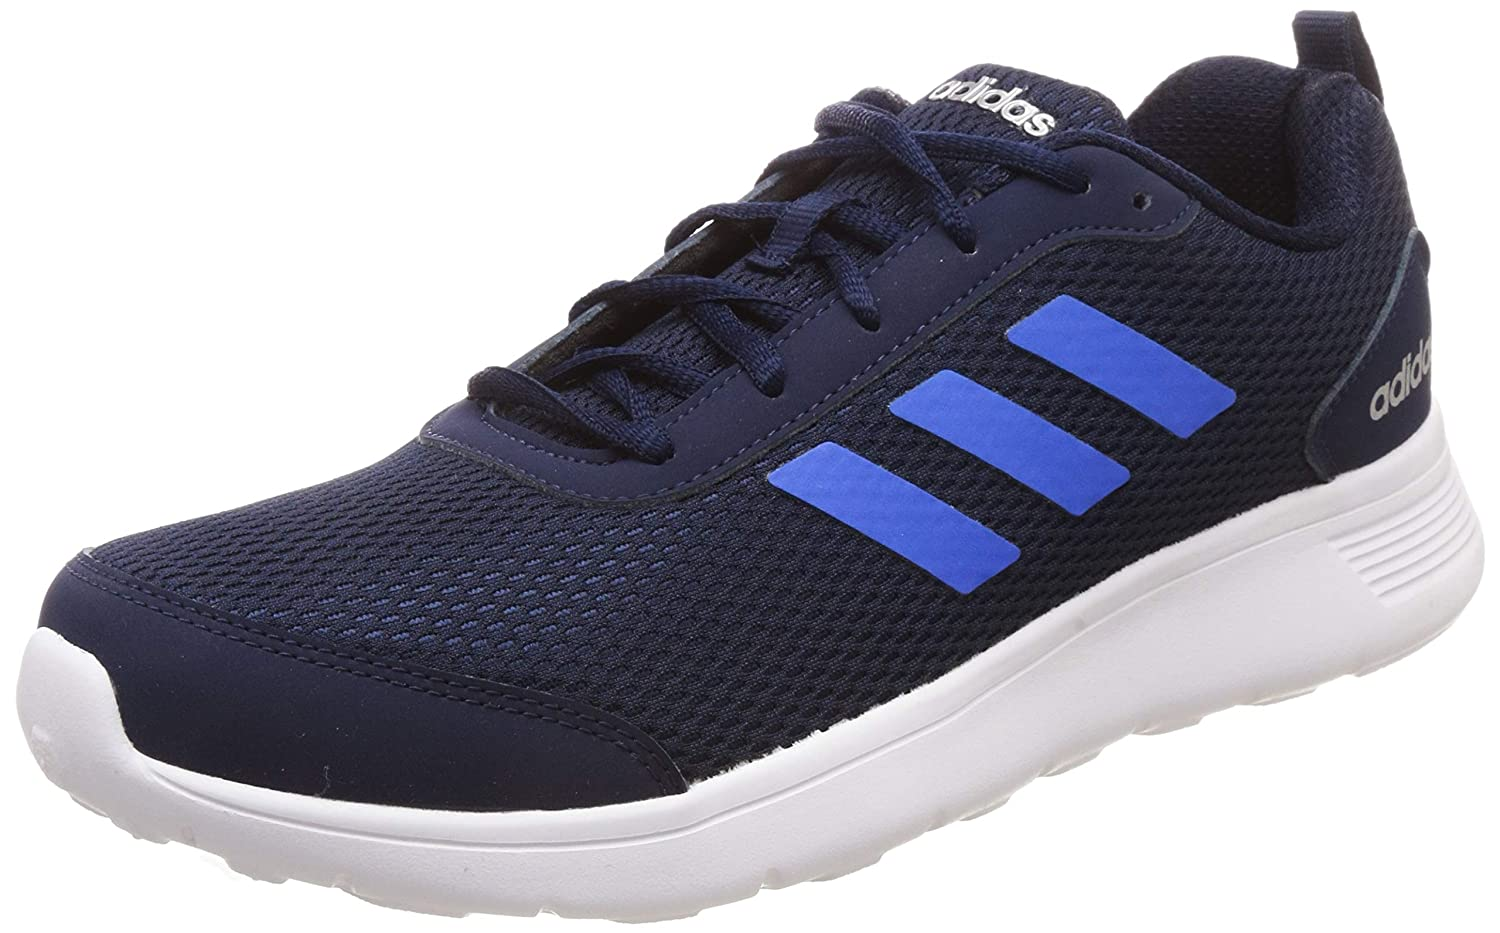 Adidas Drogo M Best Branded Running Shoes For Men in India 2019